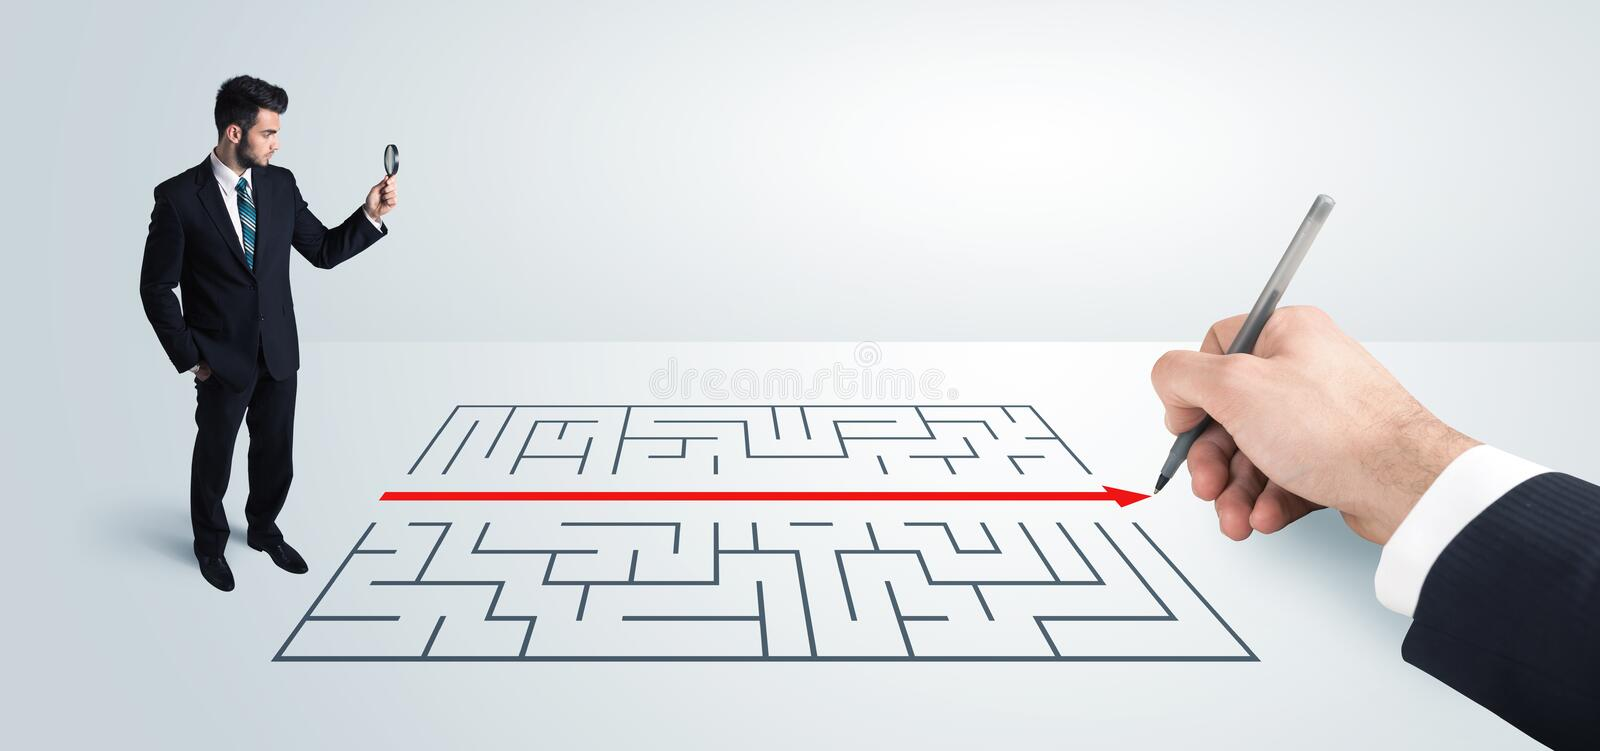 Business man looking at hand drawing solution for maze. Solution concept royalty free stock photo